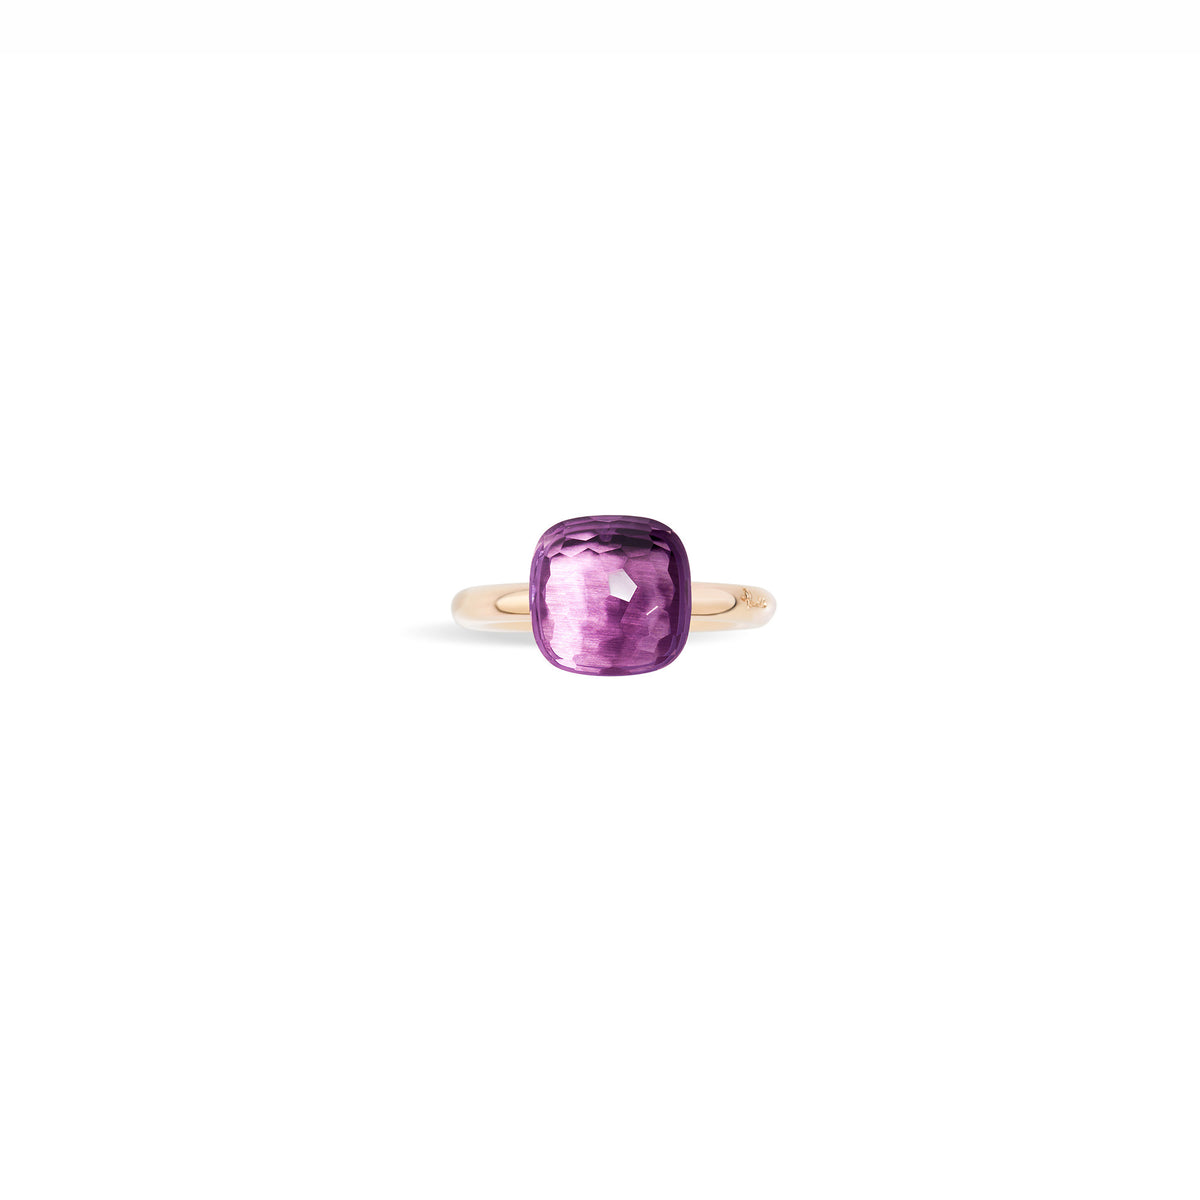 Nudo Classic Ring in 18k Rose Gold and White Gold with Amethyst - Orsini Jewellers NZ